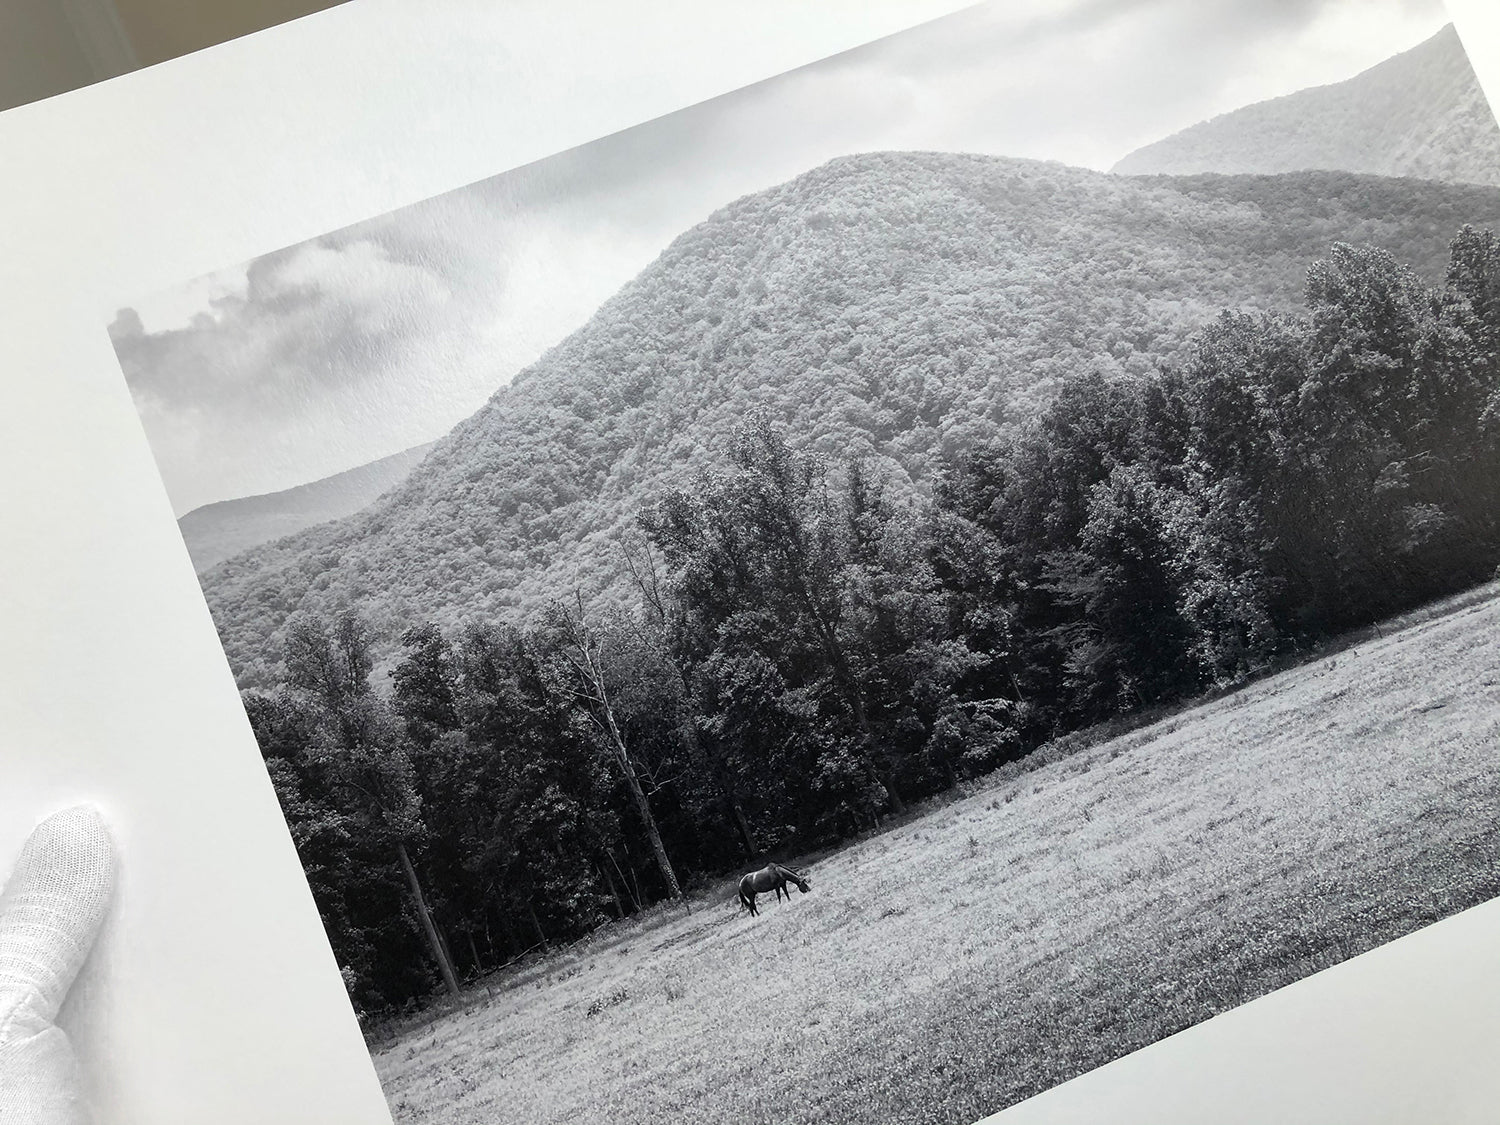 Black and white photograph of a horse grazing in the Smoky Mountains, printed on museum-quality baryta surface fine art paper.